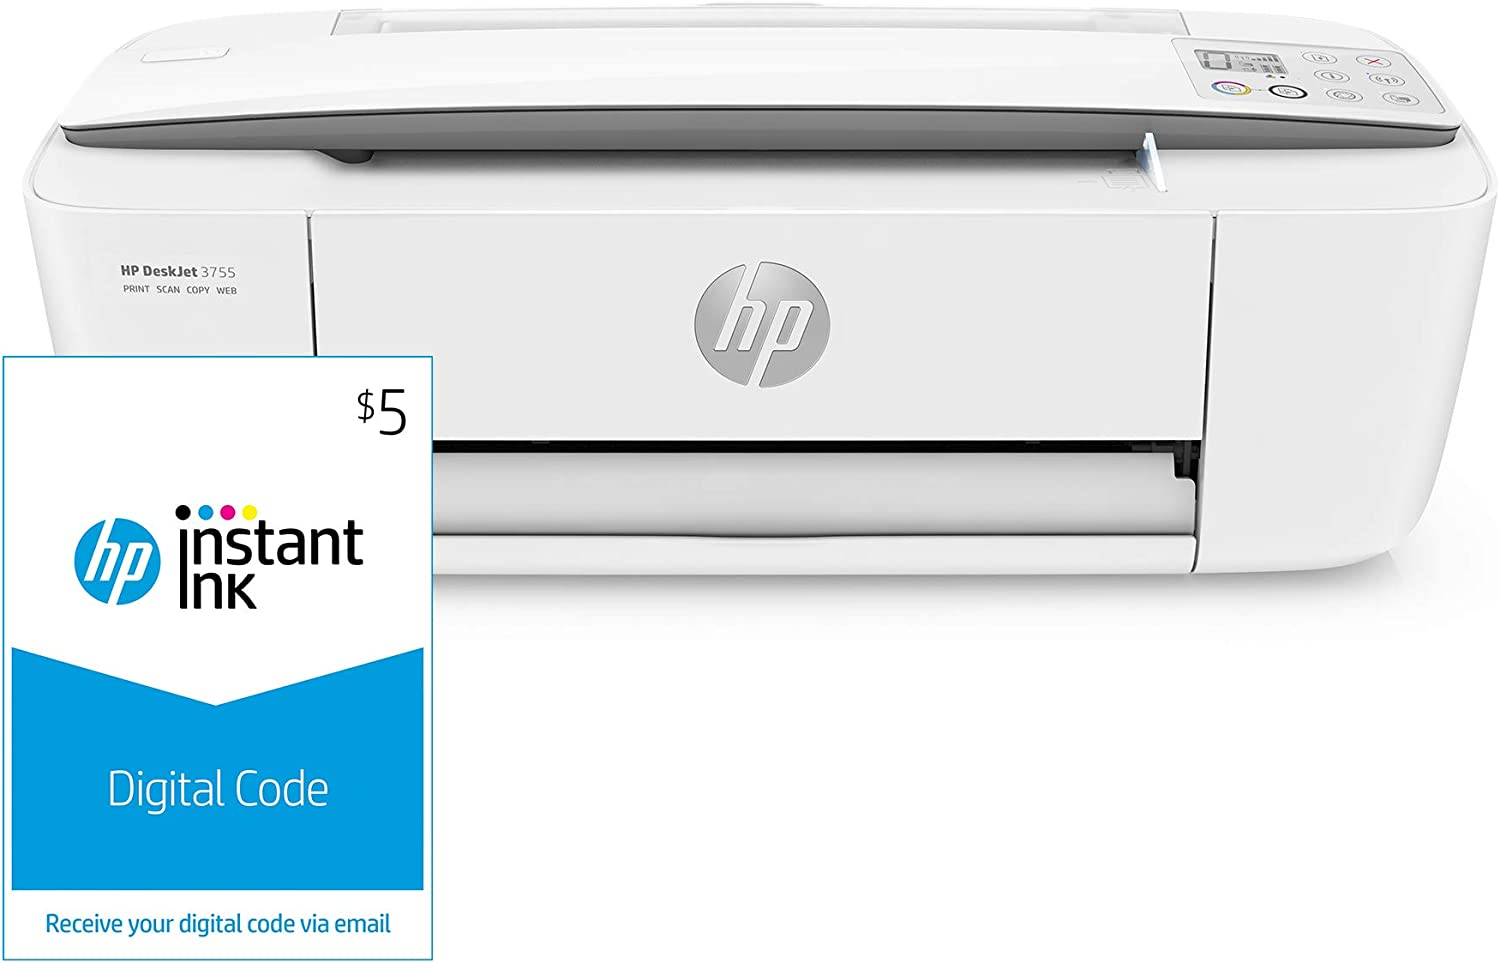 HP DeskJet 3755 Compact All-in-One Wireless Printer, HP Instant Ink & Amazon Dash Replenishment ready - Stone Accent (J9V91A) and Instant Ink $5 Prepaid Code